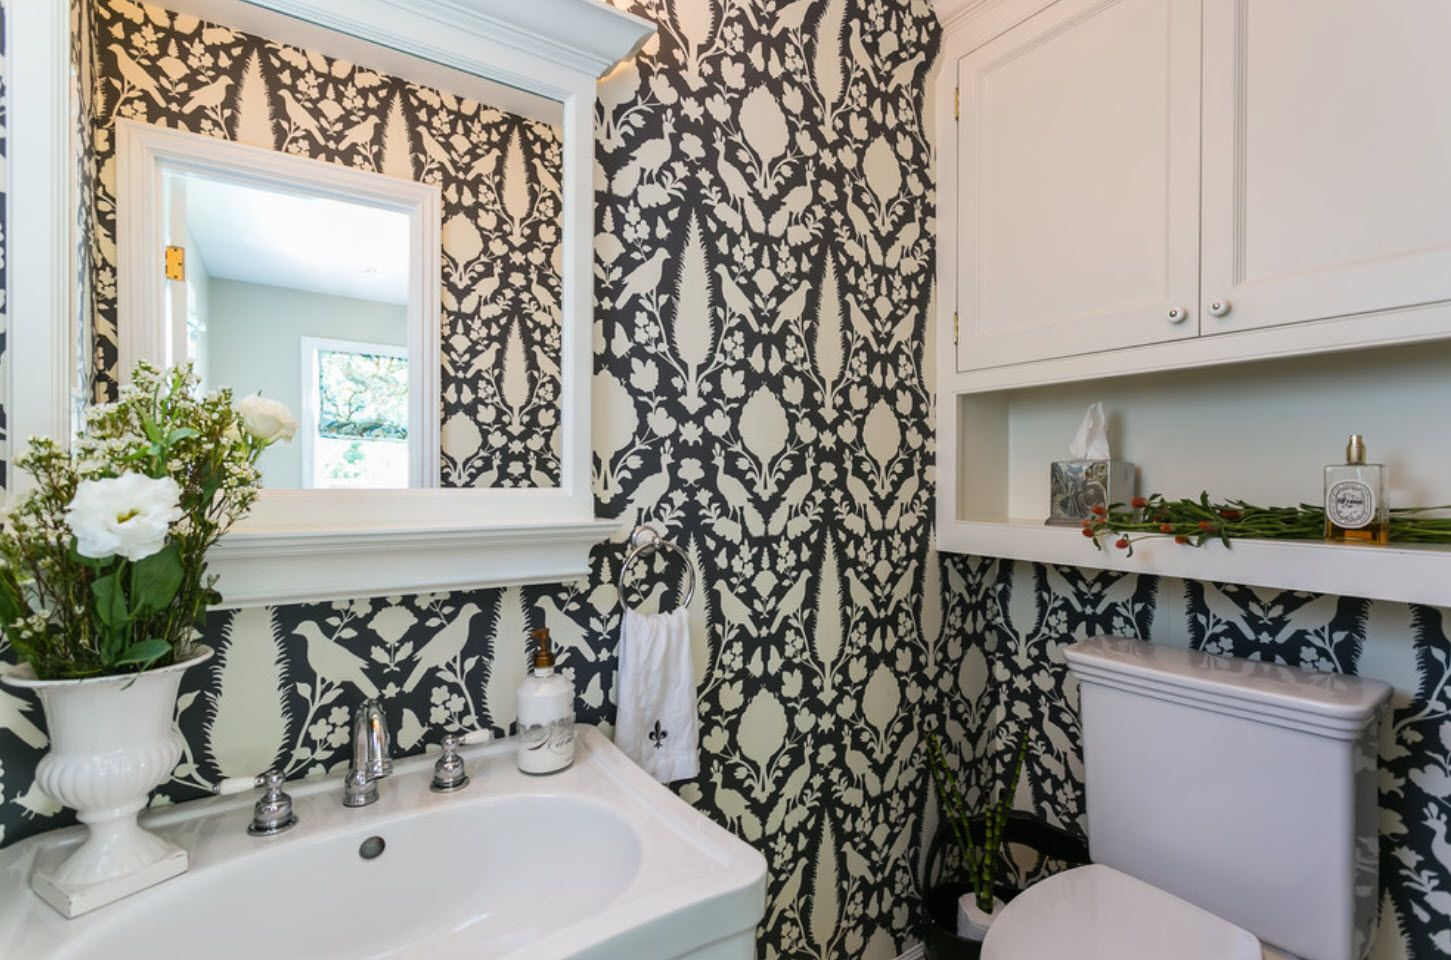 Black and white pattern of the walls in the Classic designed bathroom